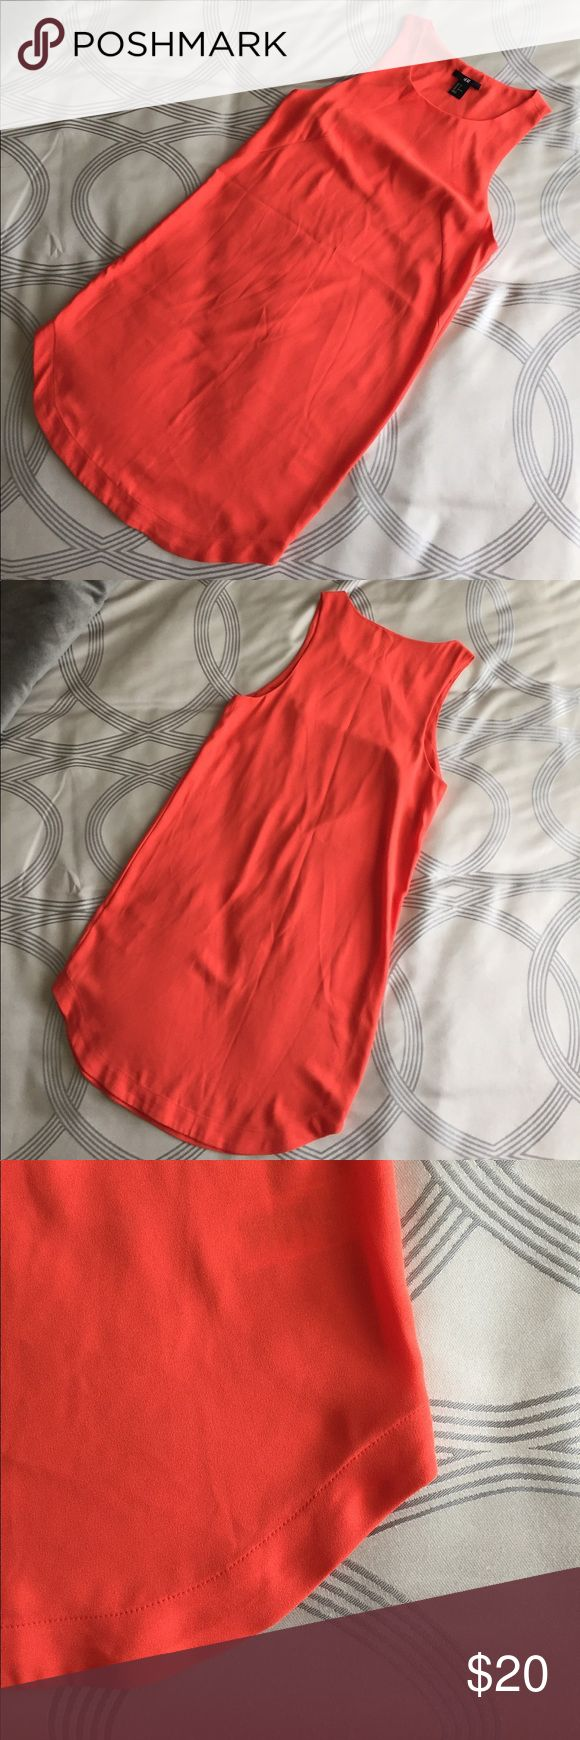 H&M Orange Shift Dress Worn once on special occasion. This dress is perfect for summer! Lightweight and airy with perfectly dolphin hem. Dress up or wear for a casual affair! H&M Dresses